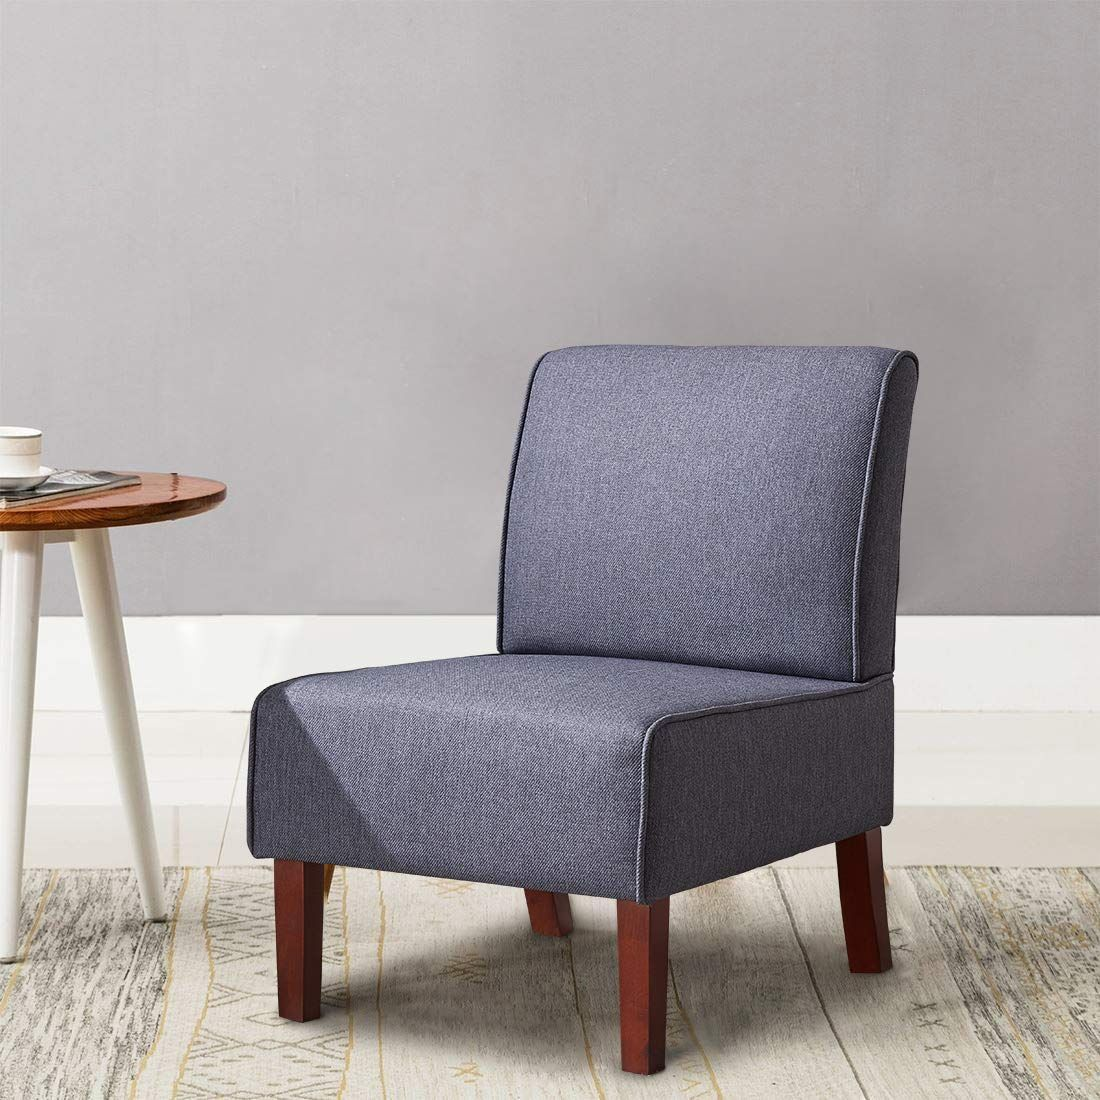 IDS Modern Single Seat Sofa Accent Fabric Chair Single